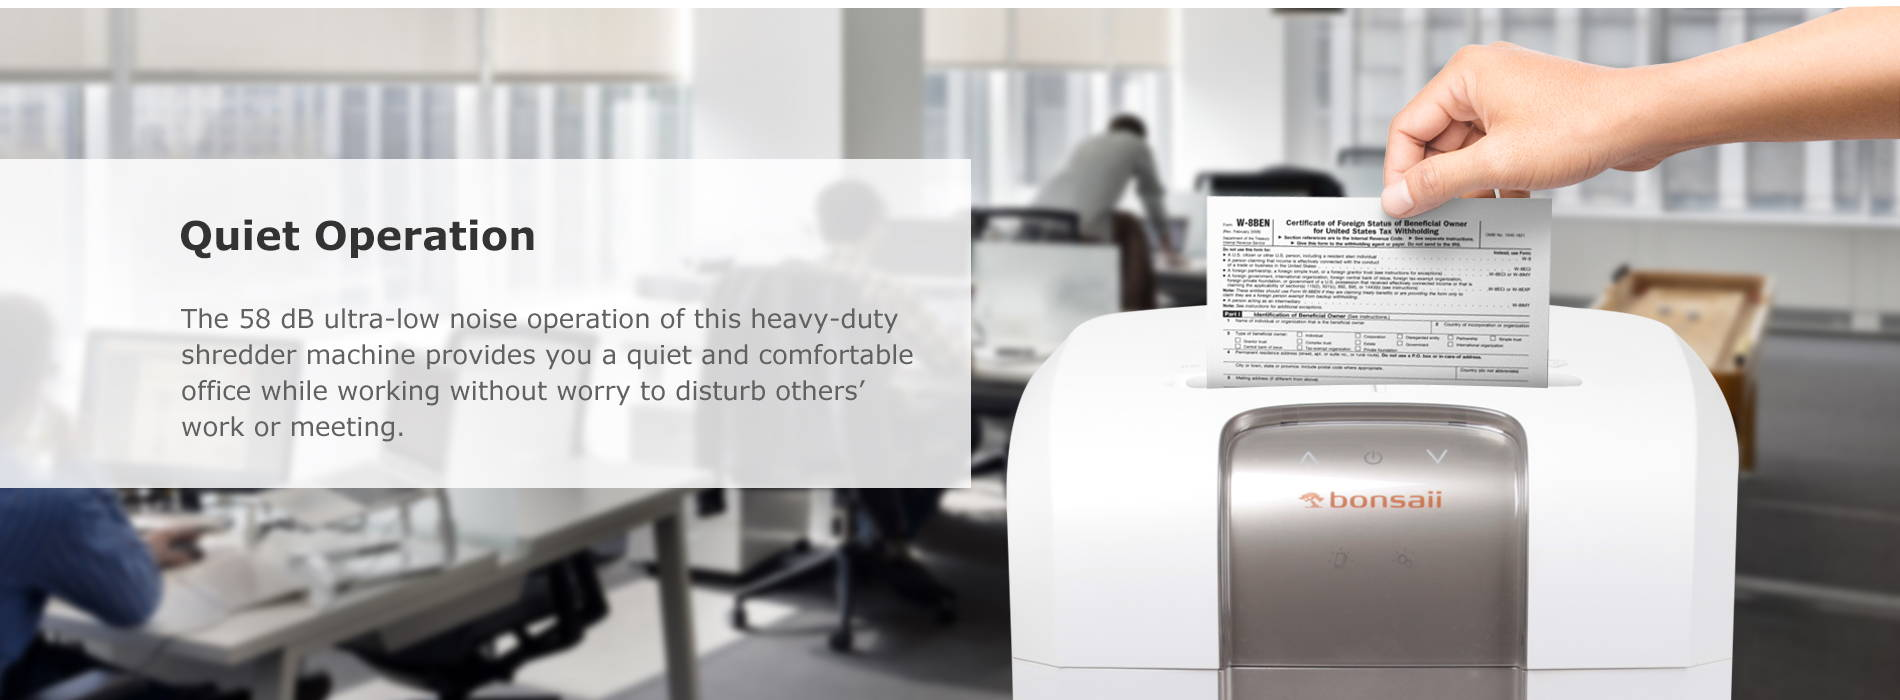 Quiet Operation The 58 dB ultra-low noise operation of this heavy-duty shredder machine provides you a quiet and comfortable office while working without worry to disturb others' work or meeting.